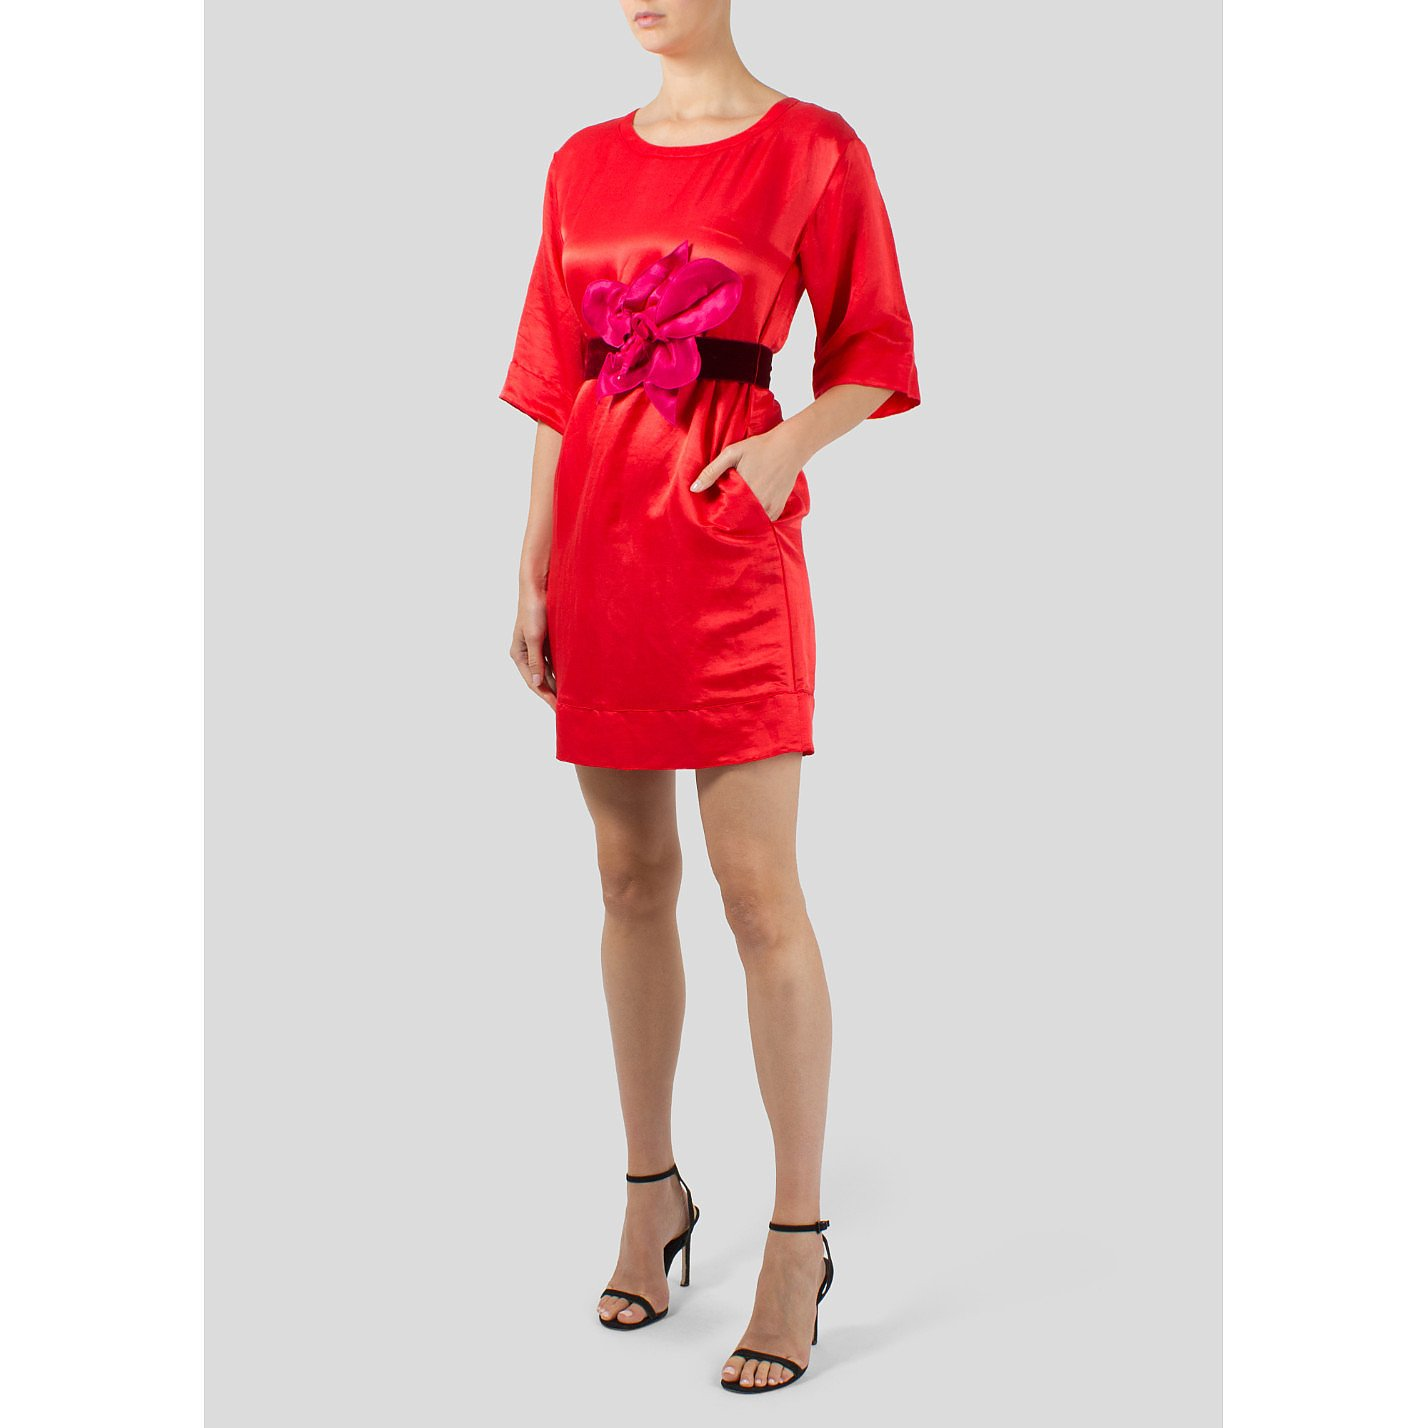 Marc Jacobs Tunic Dress with Statement Belt